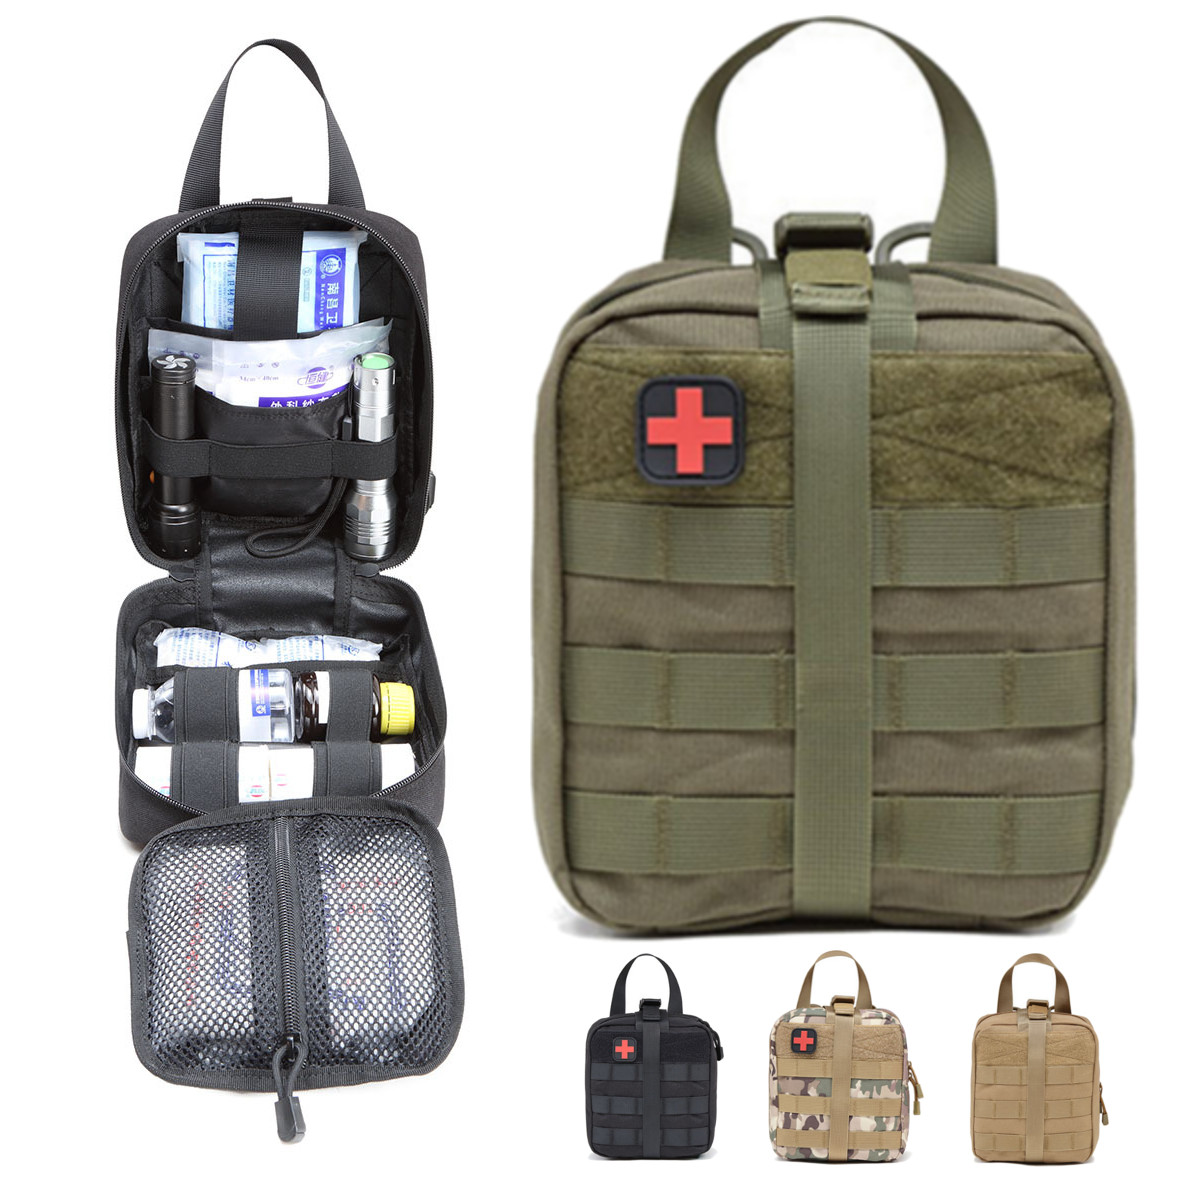 Tactical First Aid Kit Pouch Survival Medical Bag Portable Pouch Emergency Travel Outdoor Mountaineering Climbing Lifesaving Bag